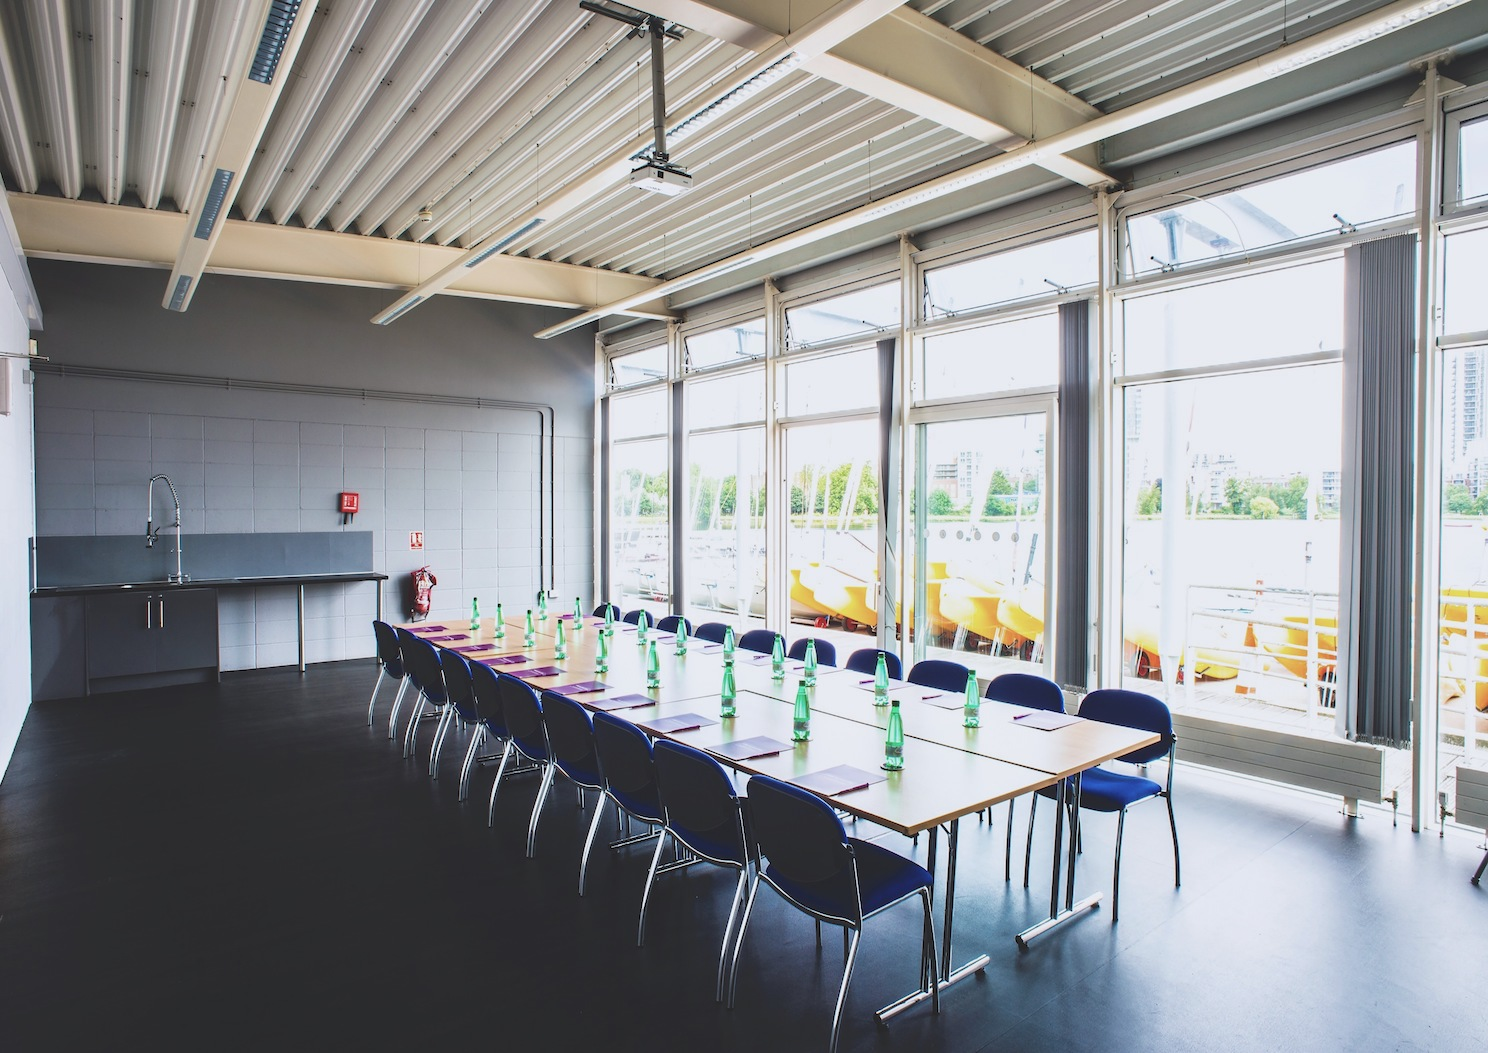 Lecture Room - Boardroom Style.jpg